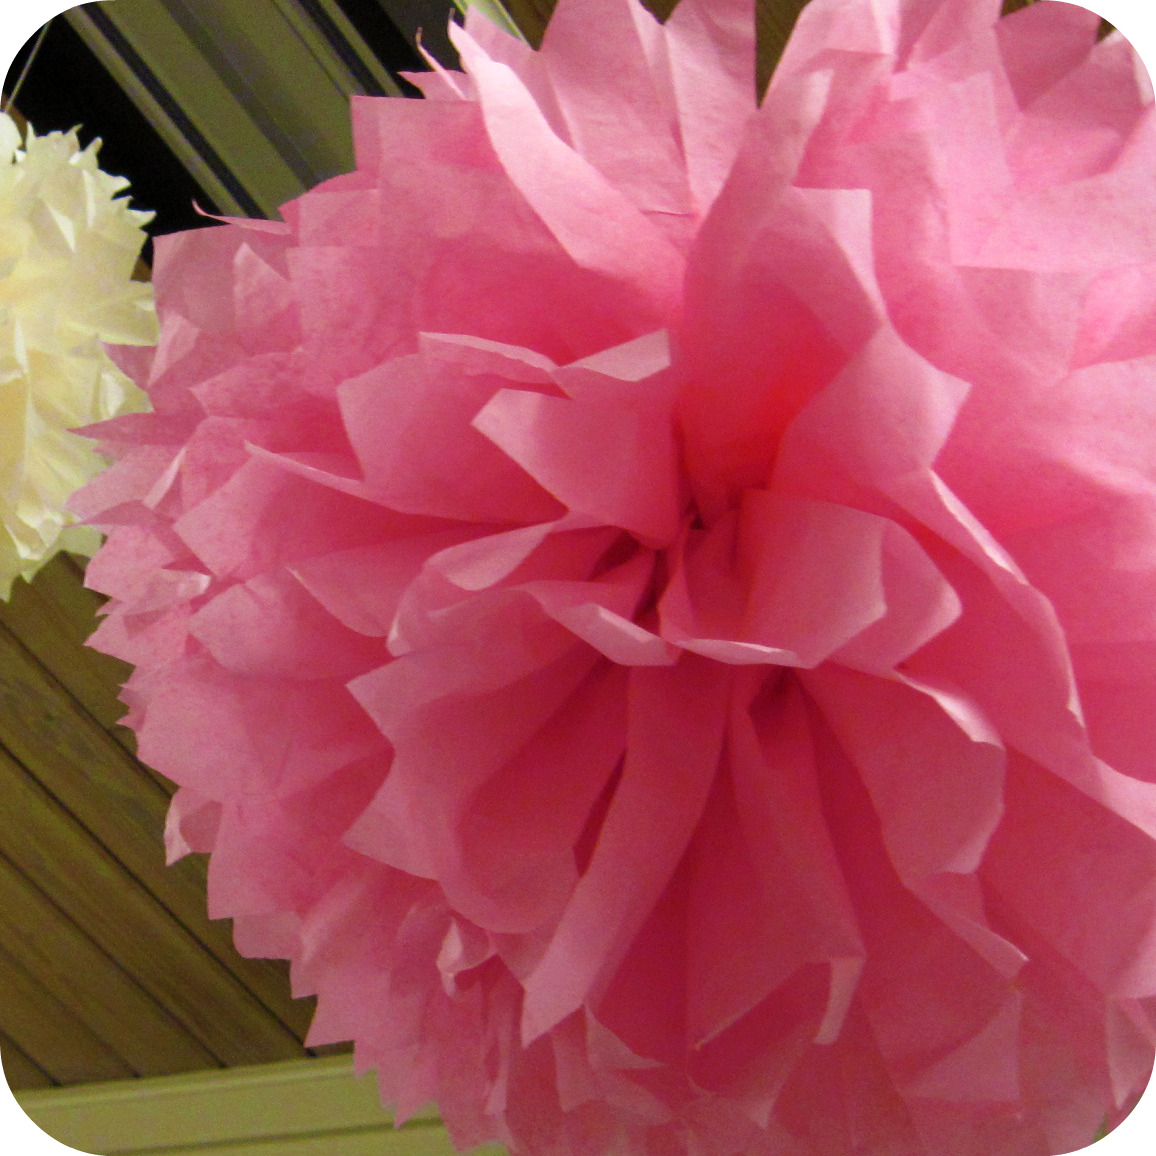 making tissue paper pom poms Use a fork and toilet paper rolls to create size xs if you like it, you will be more than happy to use your fork as a one of two, easy ways to make pom poms preparing this how many times did you wrap the yarn around the toilet tissue rolls to get a nice full pom pom seashore80321.